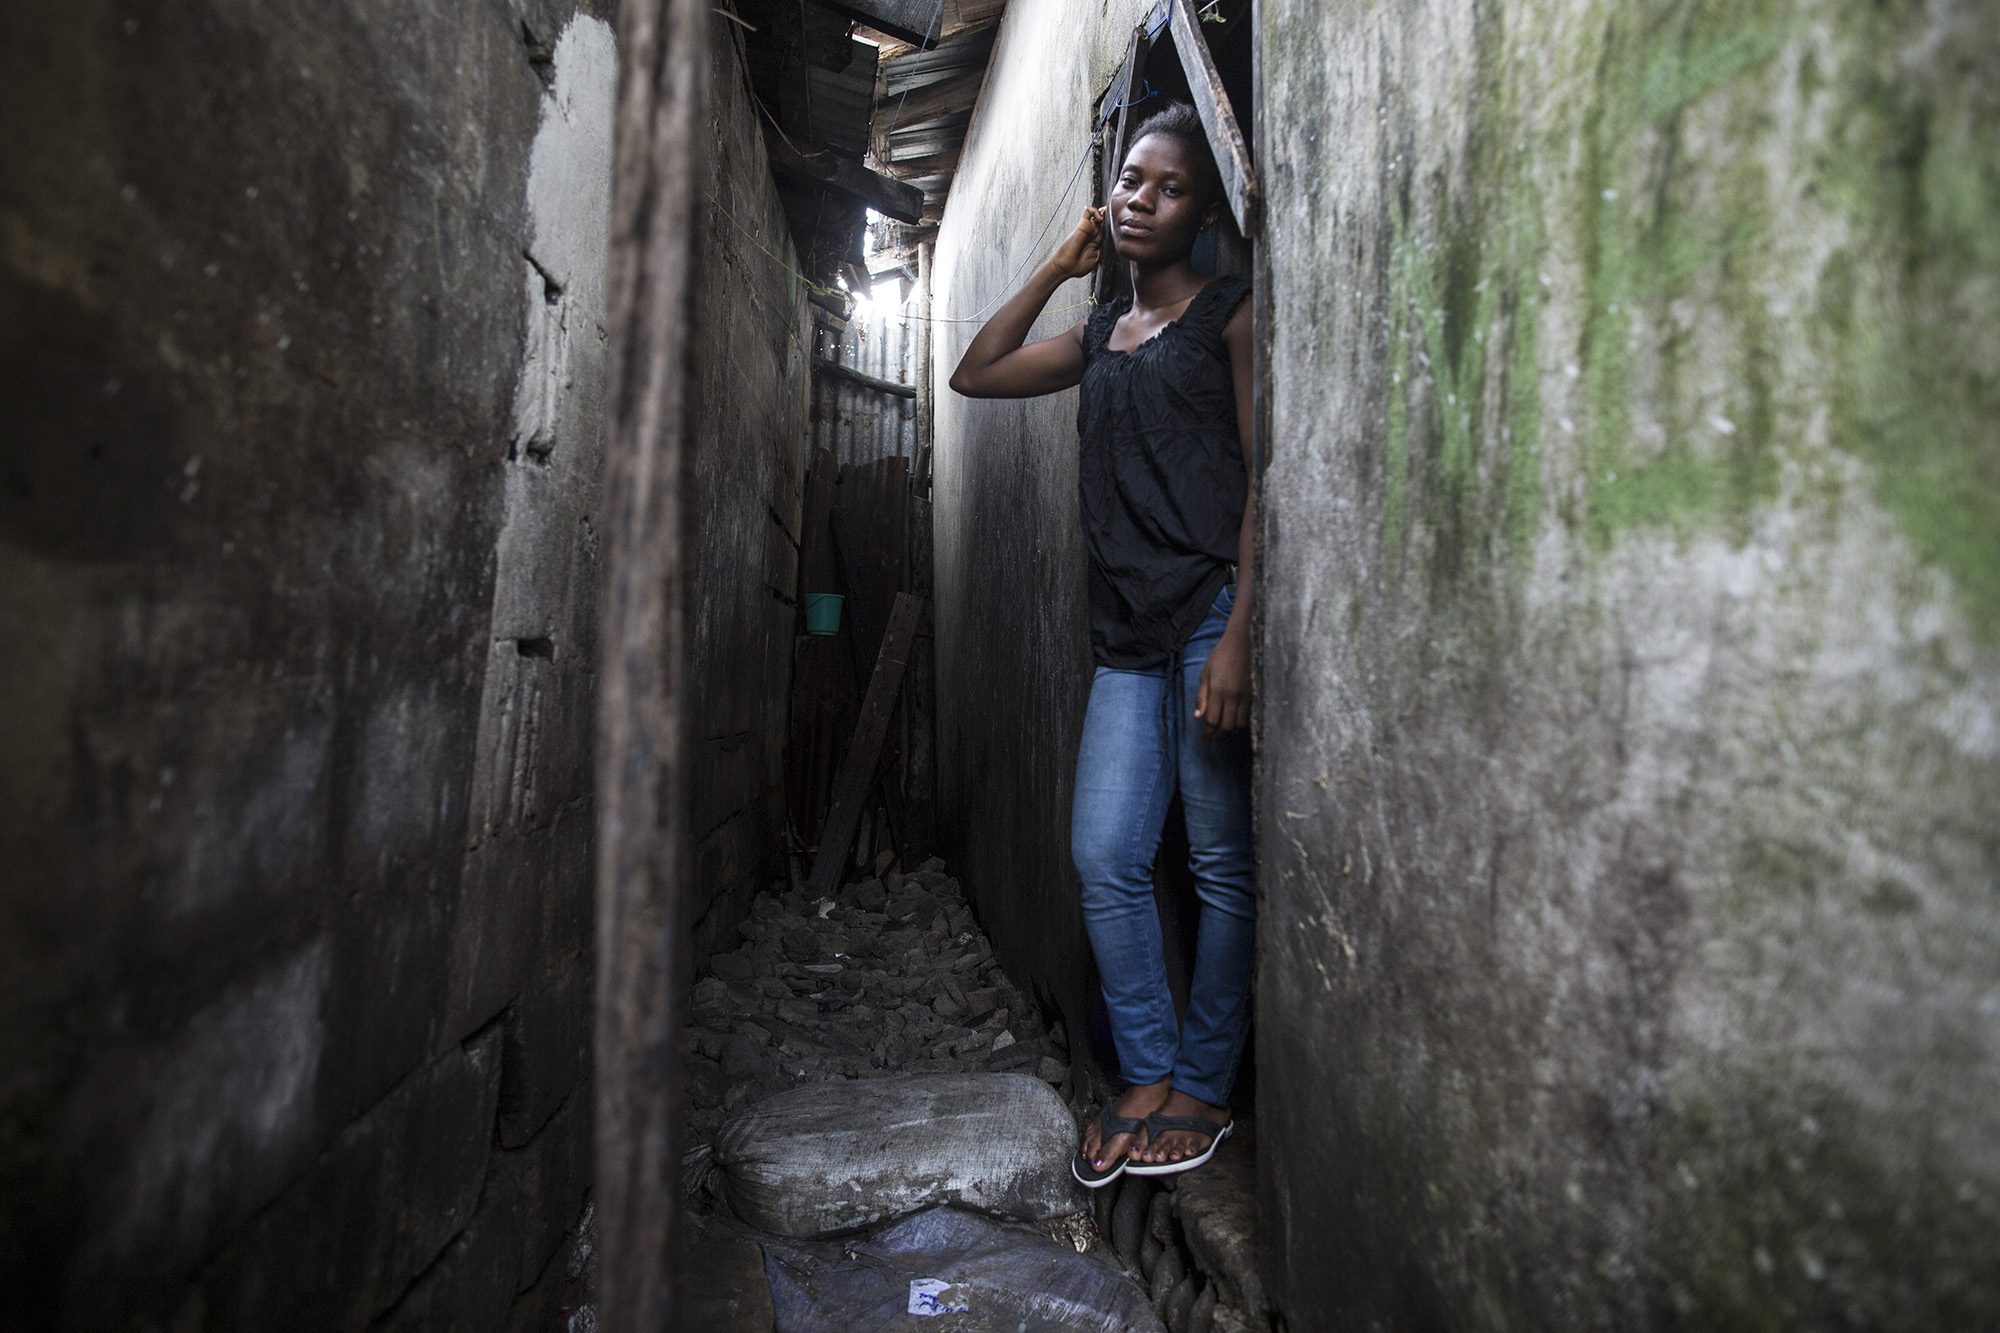 """MONROVIA, LIBERIA: Jessica Meufville,17, is a student in 10th grade in West Point — a slum in Monrovia's capital, Monrovia. Jessica was staying with her parents in West Point when Ebola came into the country. """"Sometimes I was really scared because of the information being spread around about Ebola. """"I was thought if I looked at someone with Ebola I would get it. If I came down with Ebola automatically all my family would get it."""" In August of 2014, West Point was quarantined after Ebola patients escaped from a holding center. She remembers finding out in the morning, since it occurred during the nighttime. She said, """"It was shocking to everyone. The whole time, everything was confusing, even your close friends you could not see. No one was moving. Everyone was staying at home."""" She and other young girls from West Point were part of a program headed by UNICEF's Hawa Page. These girls decided to meet at the West Point Women's Center. Their first meeting was on a Saturday. She remembers about 25 people being present. This is when they formed the group Adolescents Leading an Intense Fight Against Ebola or A-LIFE. She learned that Ebola was quite different then what was being spread around. We wanted to help save the lives of her fellow residents. """"We wanted to go door to door and tell people to follow preventative measures."""" They did training and were given protective wear. """"It was challenging. A lot of people never accepted the message. It used to make me feel bad. Our supervisor always used to encourage us. It was that motivation that kept me moving on to talk with people for more lives to be saved."""" They ended up doing the awareness for 6 months. Now, Jessica is back in school and hopes to become a journalist to """"help speak for the speechless."""" Photo by Sarah Grile"""